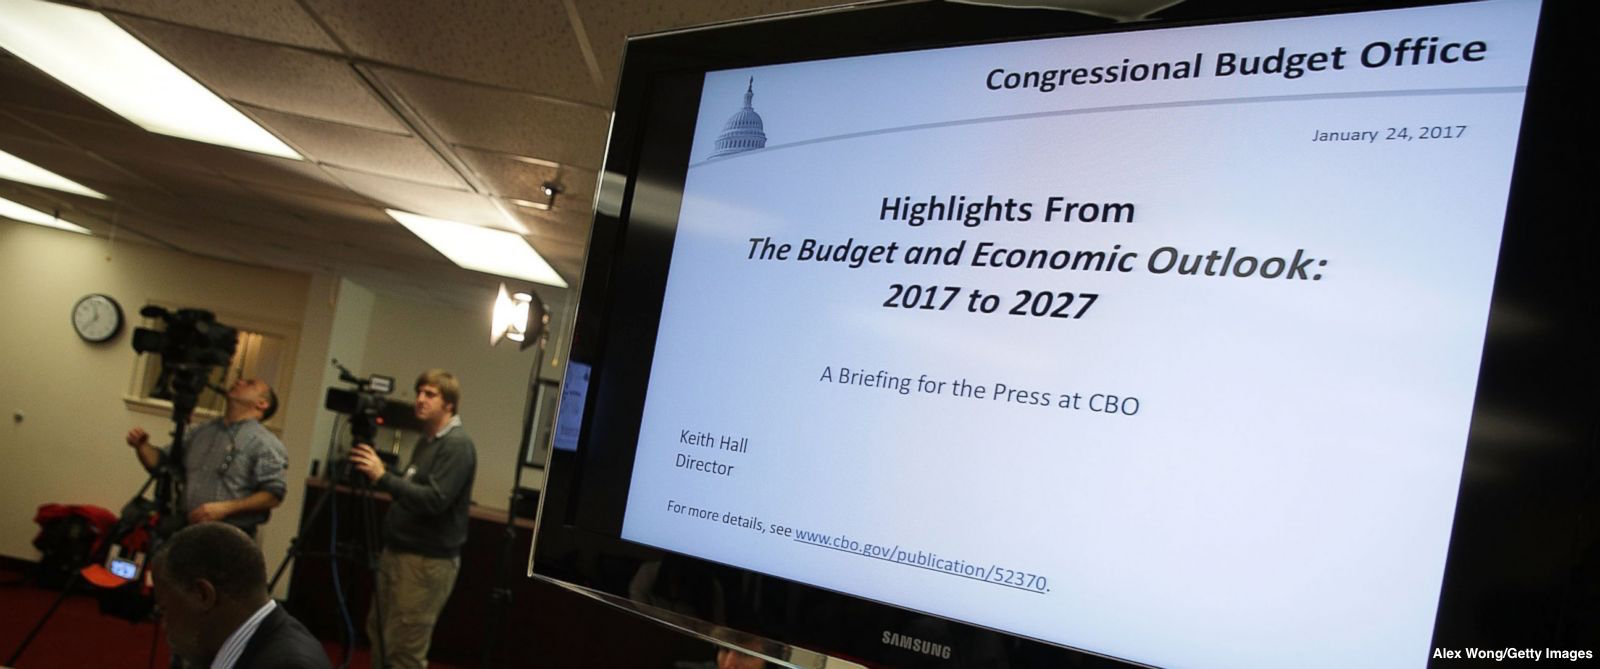 What the Congressional Budget Office does and how it gets its numbers https://t.co/jksvem41EV https://t.co/1NWGhjOovx